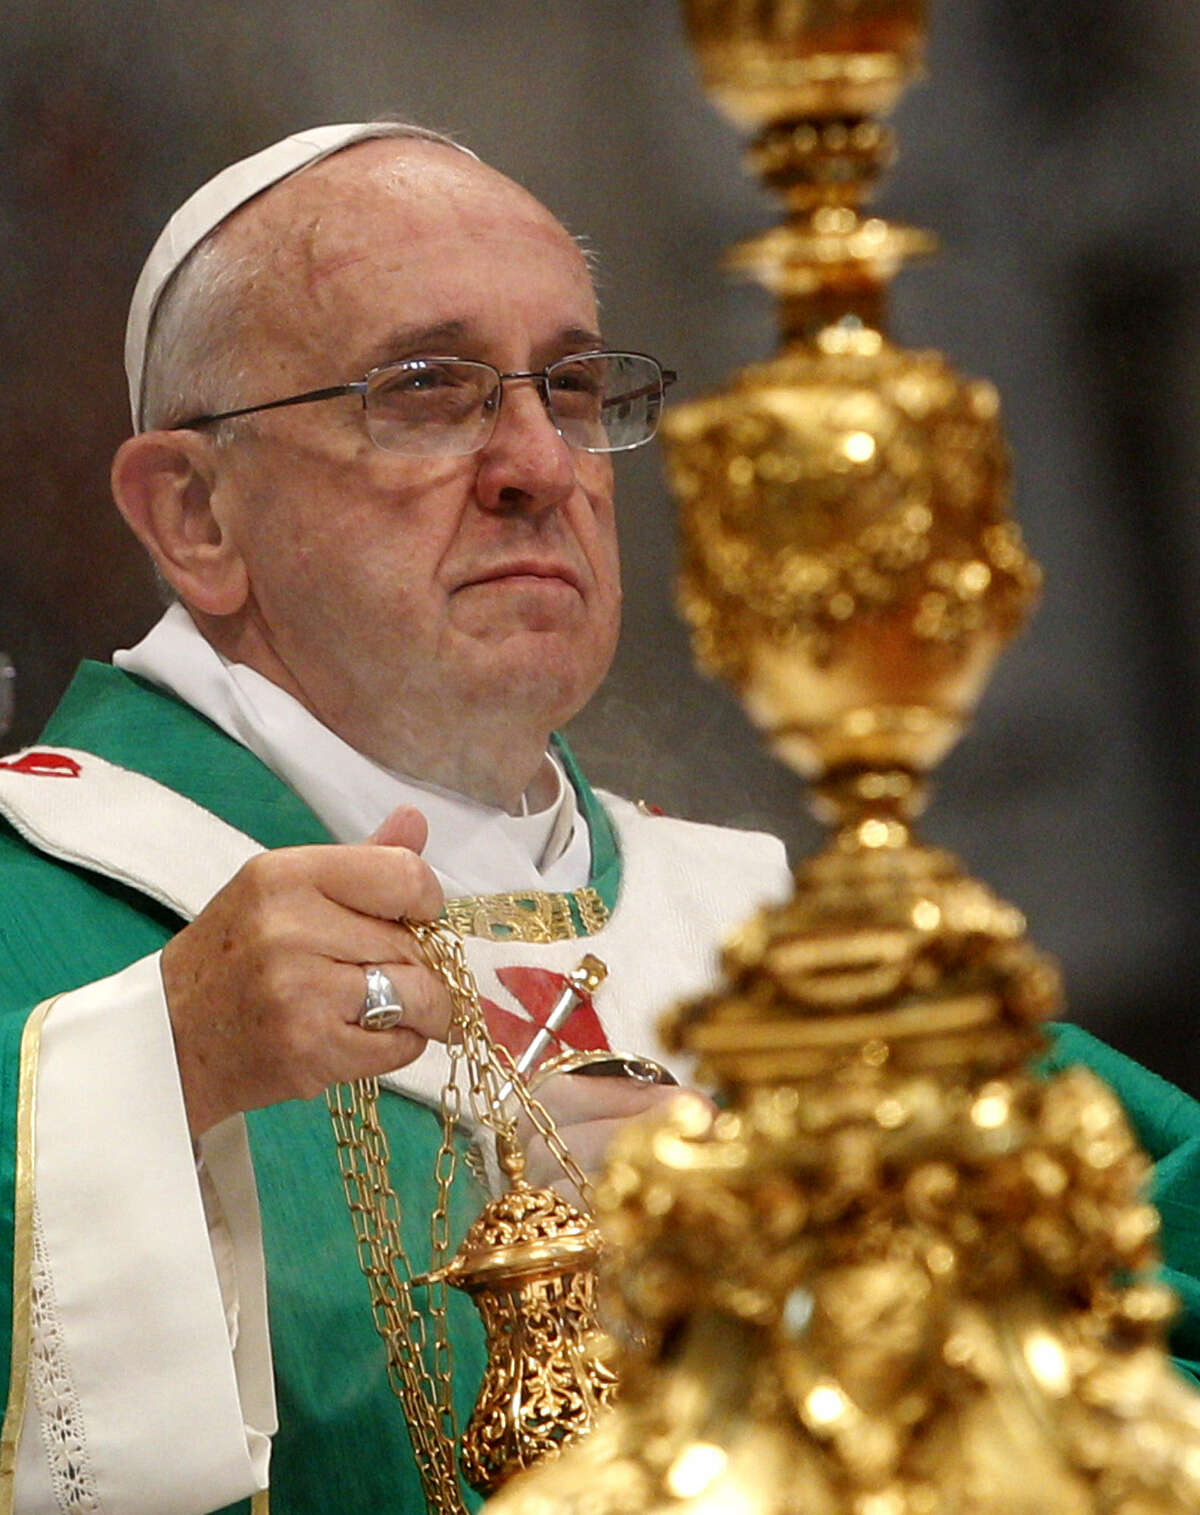 Pope Francis will tour Rio de Janeiro in an open-top car, shunning the bulletproof popemobile.